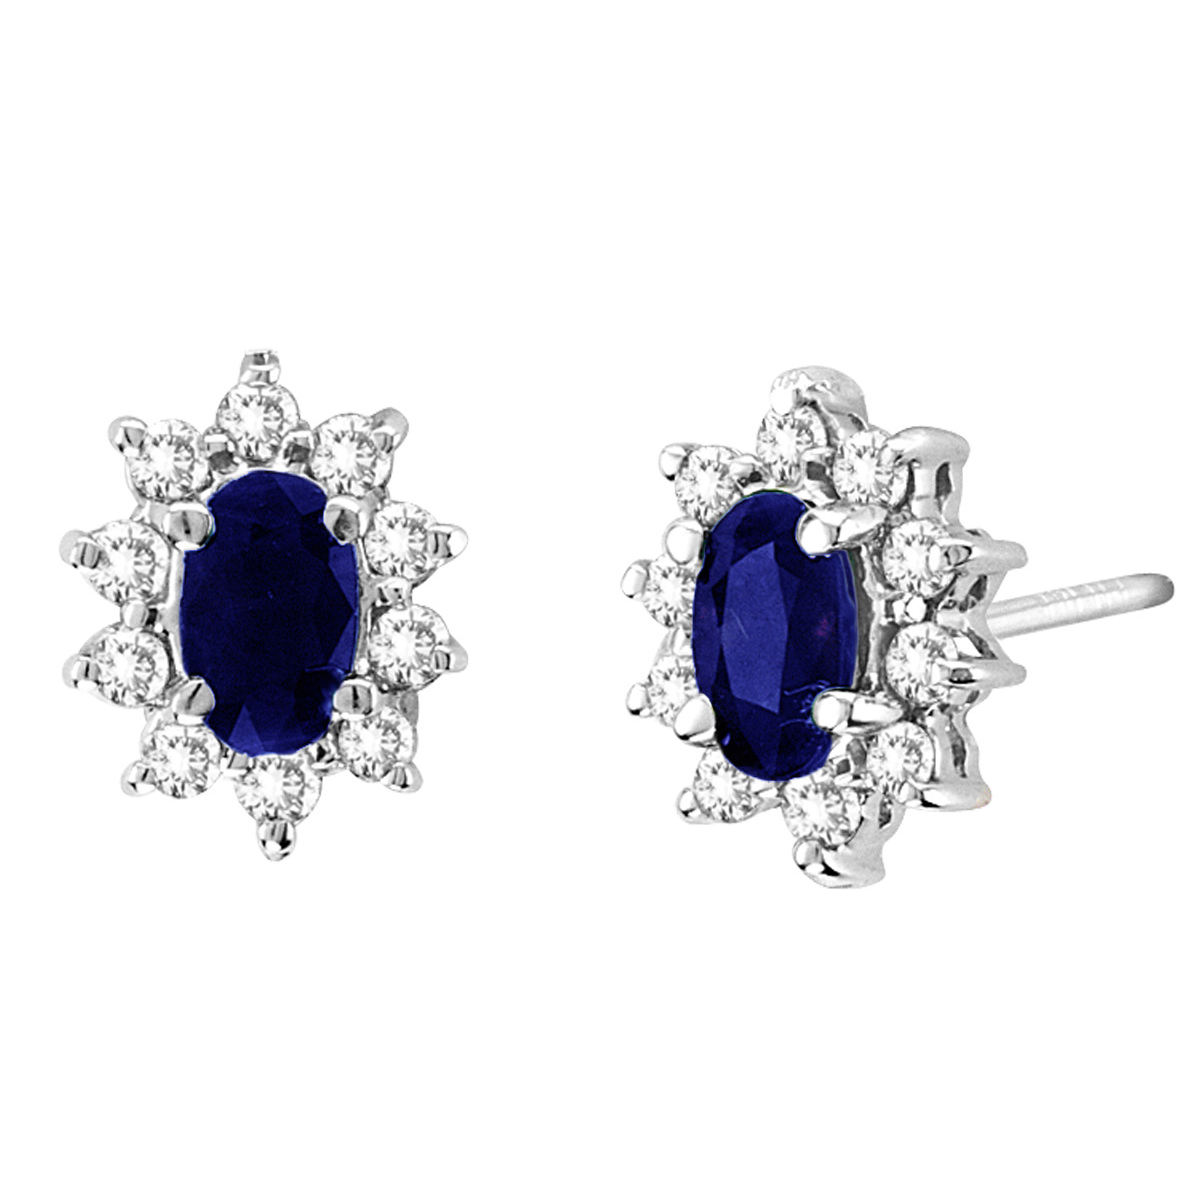 View 0.70cttw Diamond and Sapphire Earring in 14k Gold